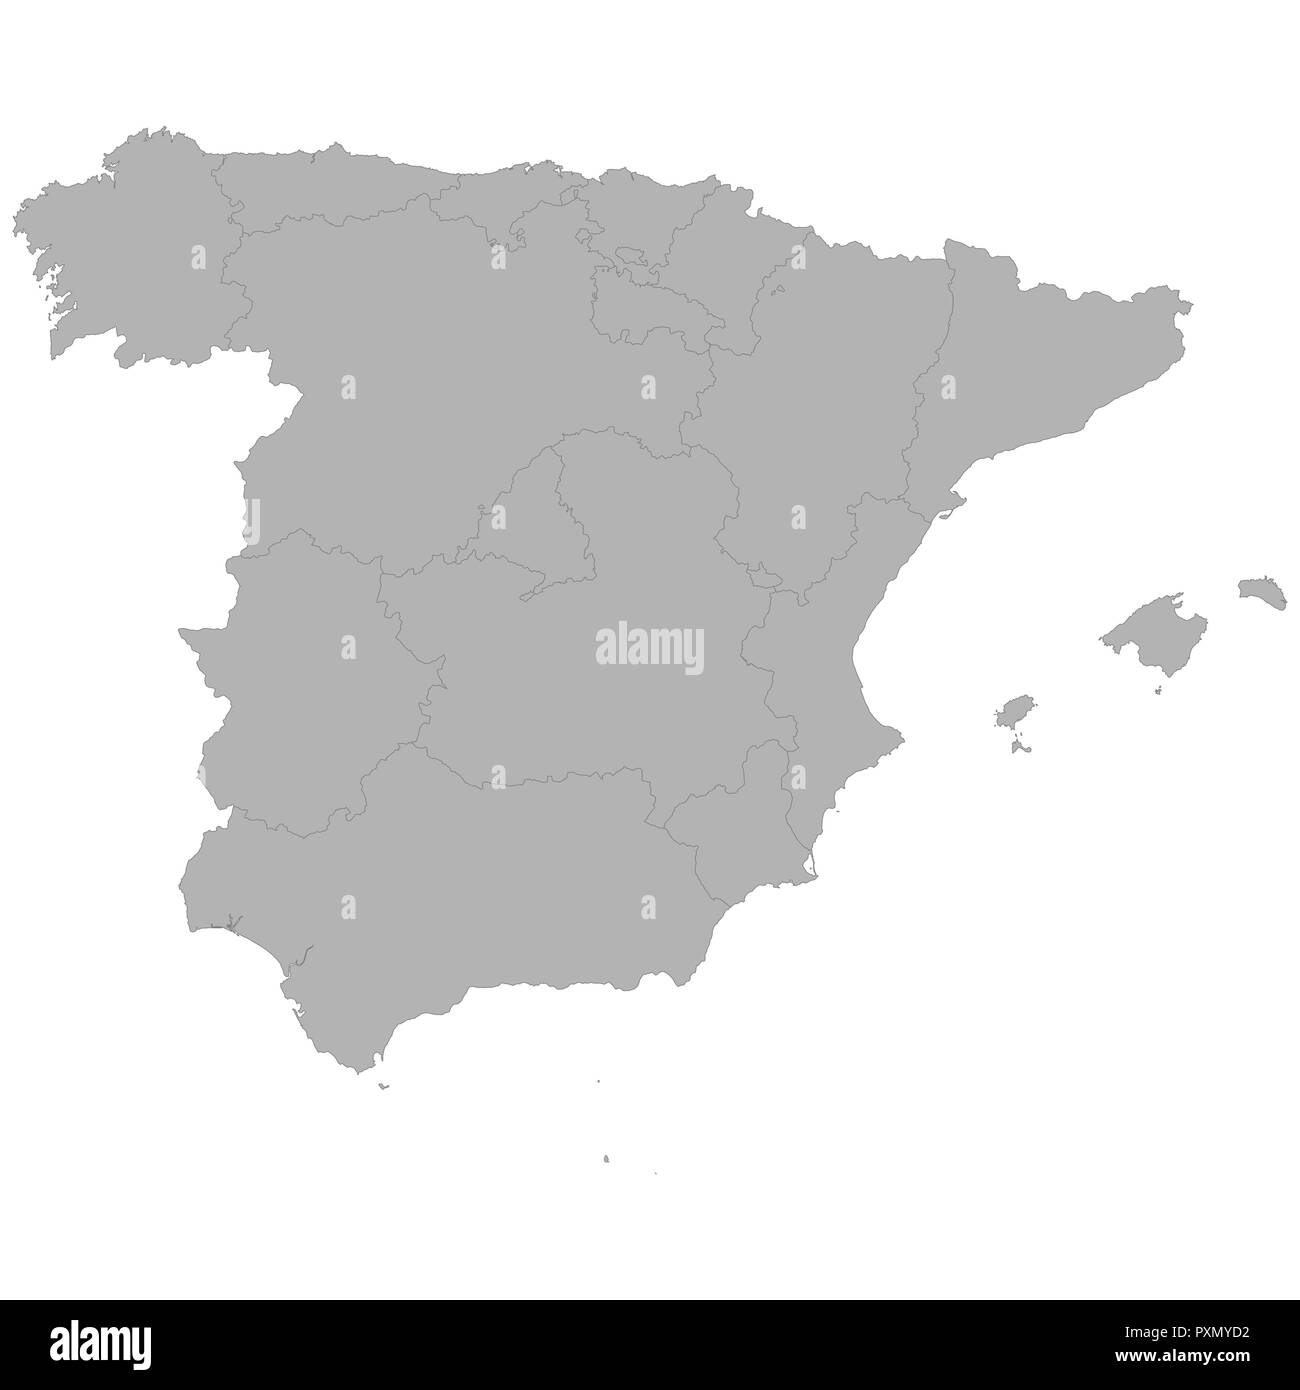 Spain Map Regions Black and White Stock Photos & Images - Alamy